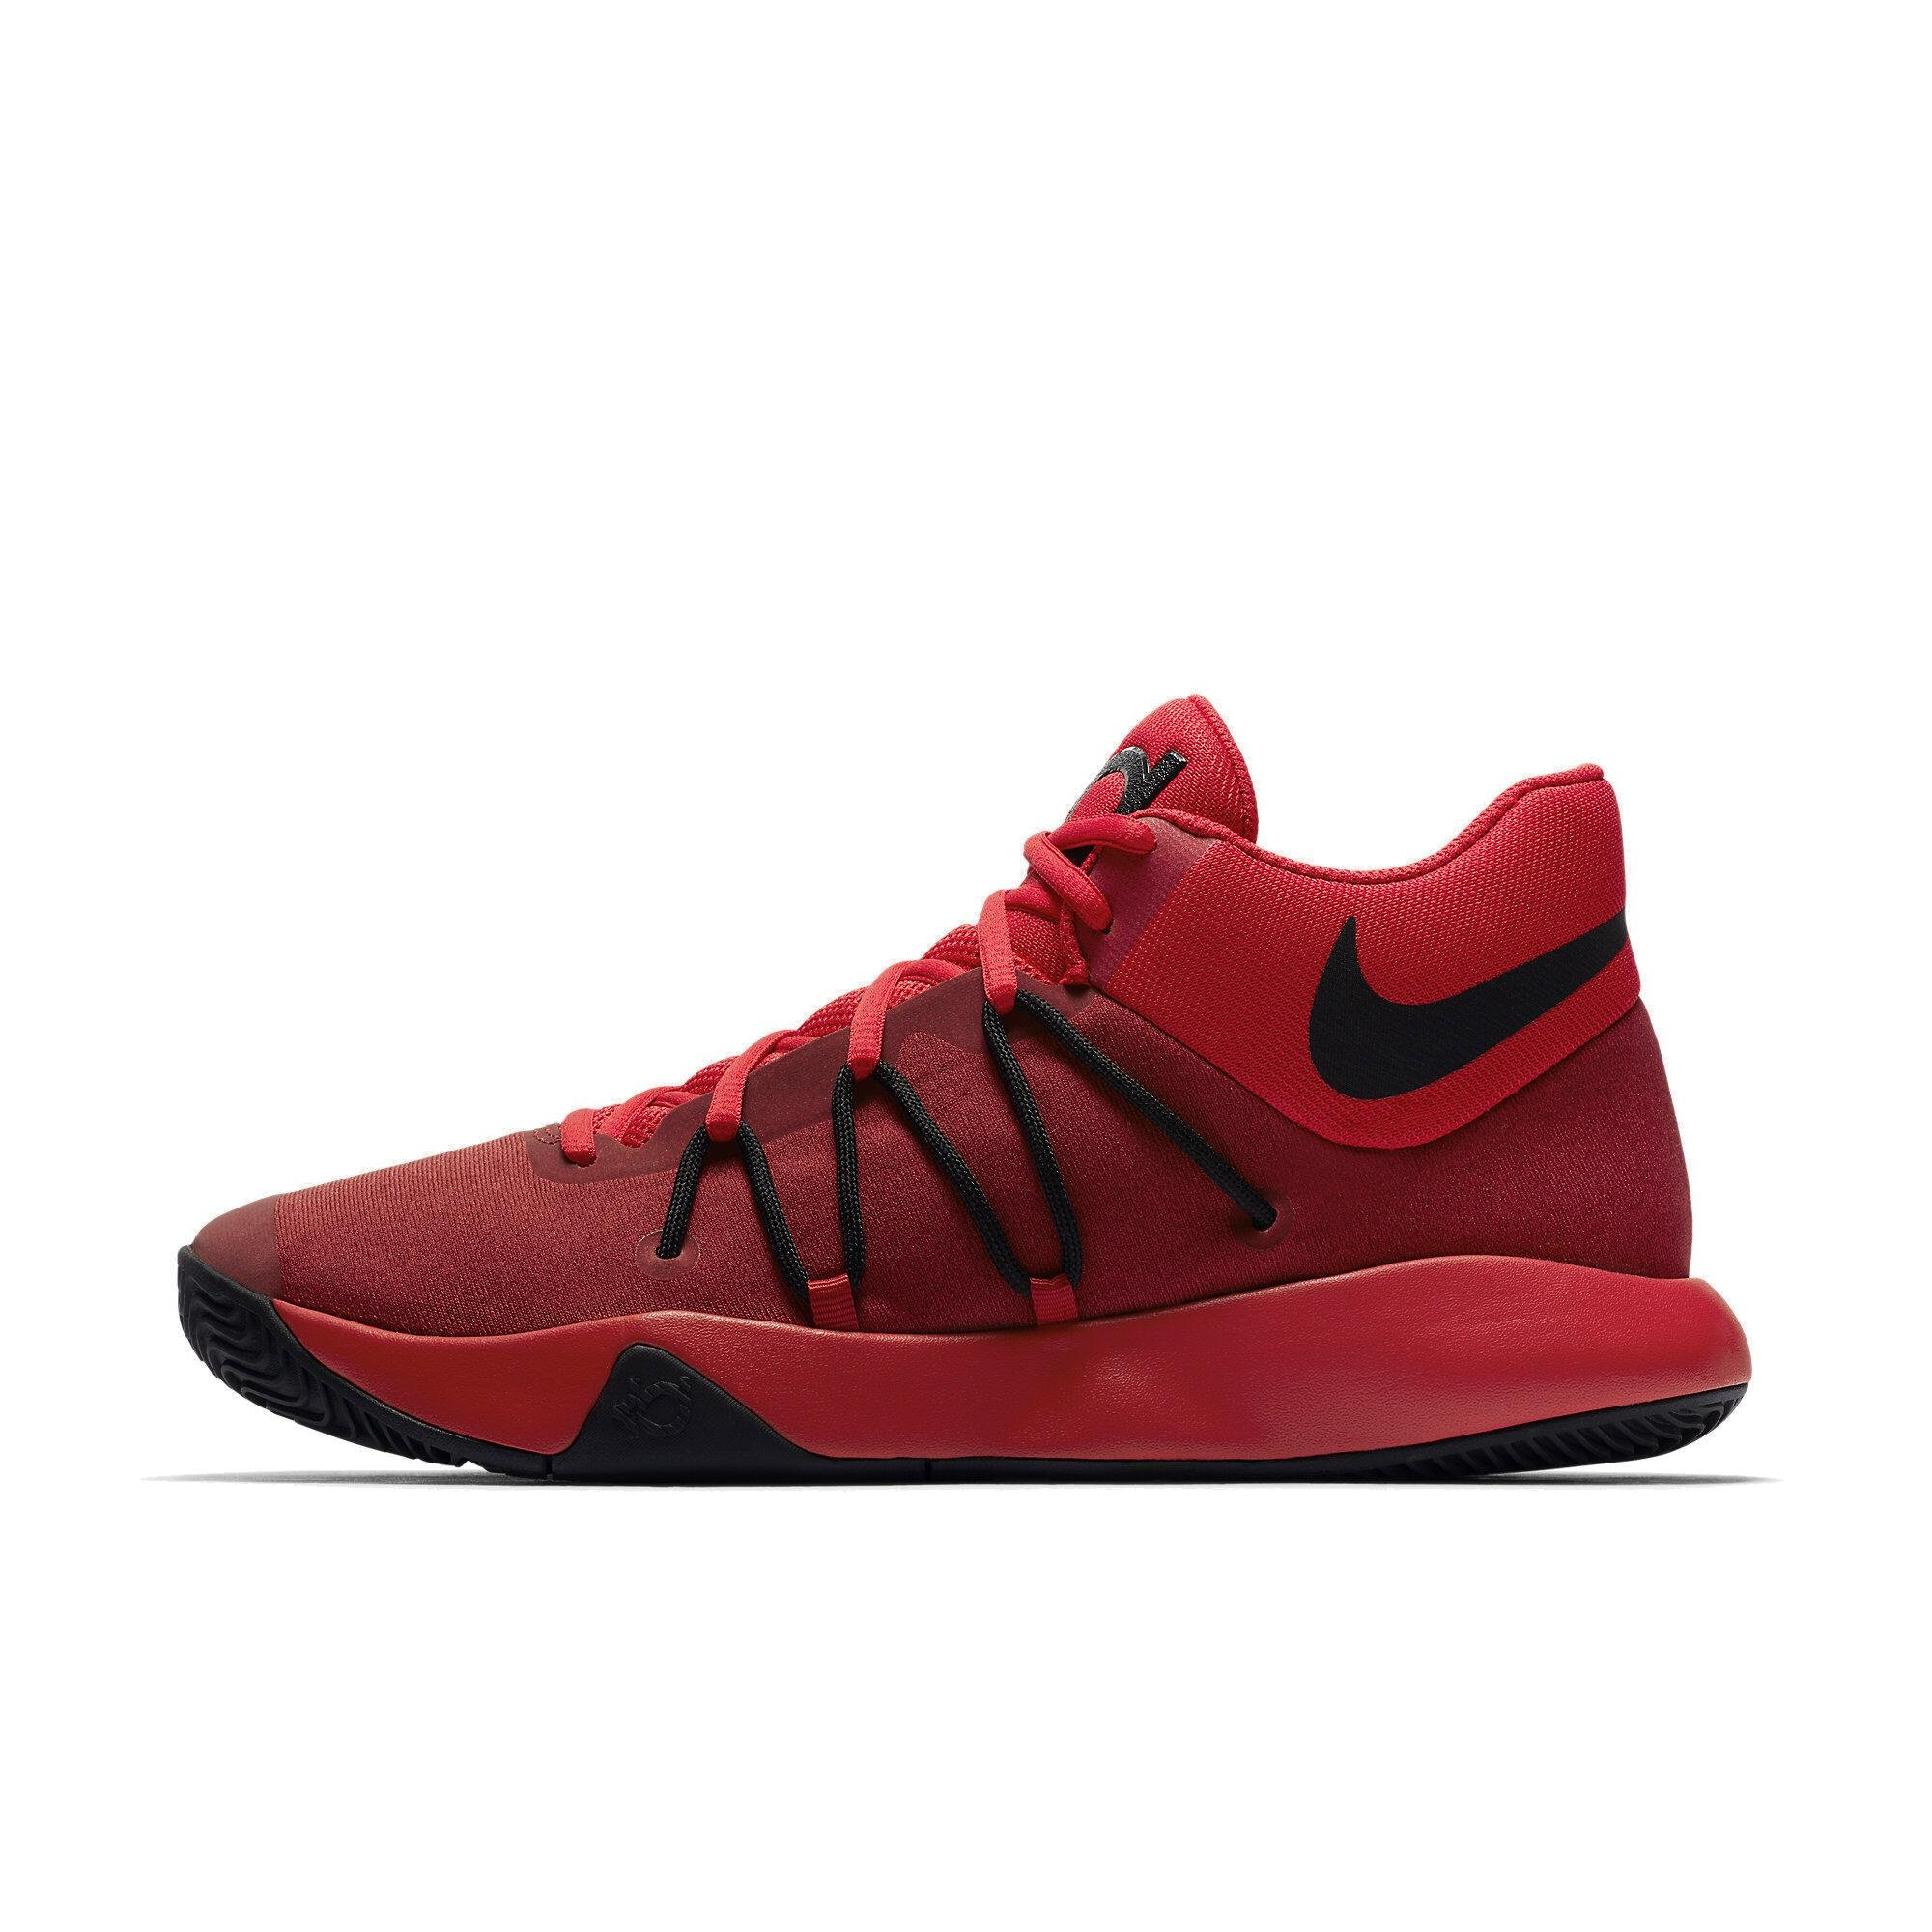 the latest a1ee7 9ec9b Galleon - NIKE Men's KD Trey 5 V Basketball Shoes (11.5, Red/Black)